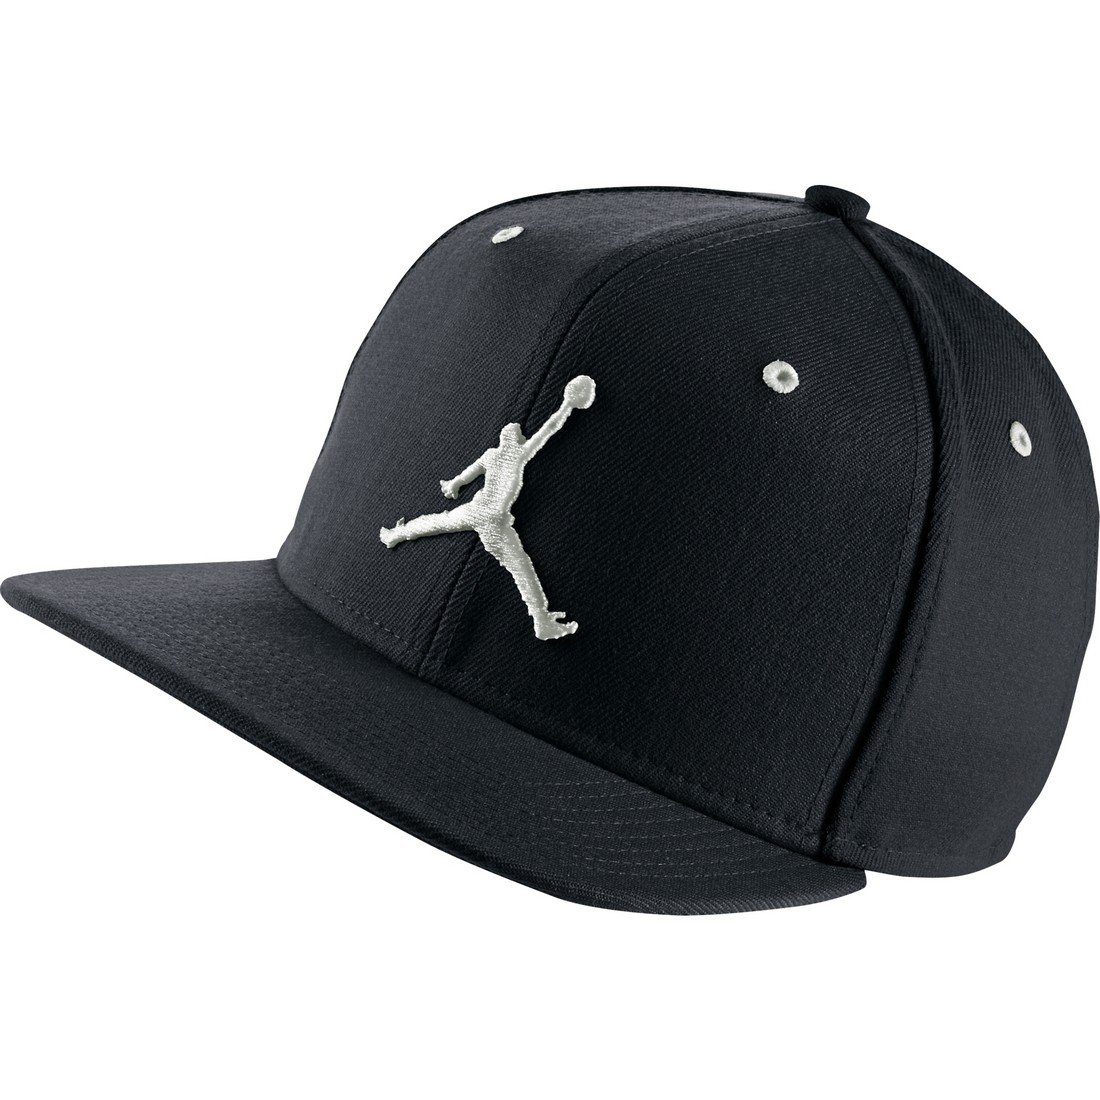 a9407149d34f20 Amazon.com  Nike Mens Air Jordan Jumpman Snapback Hat Black White  619360-017  Sports   Outdoors